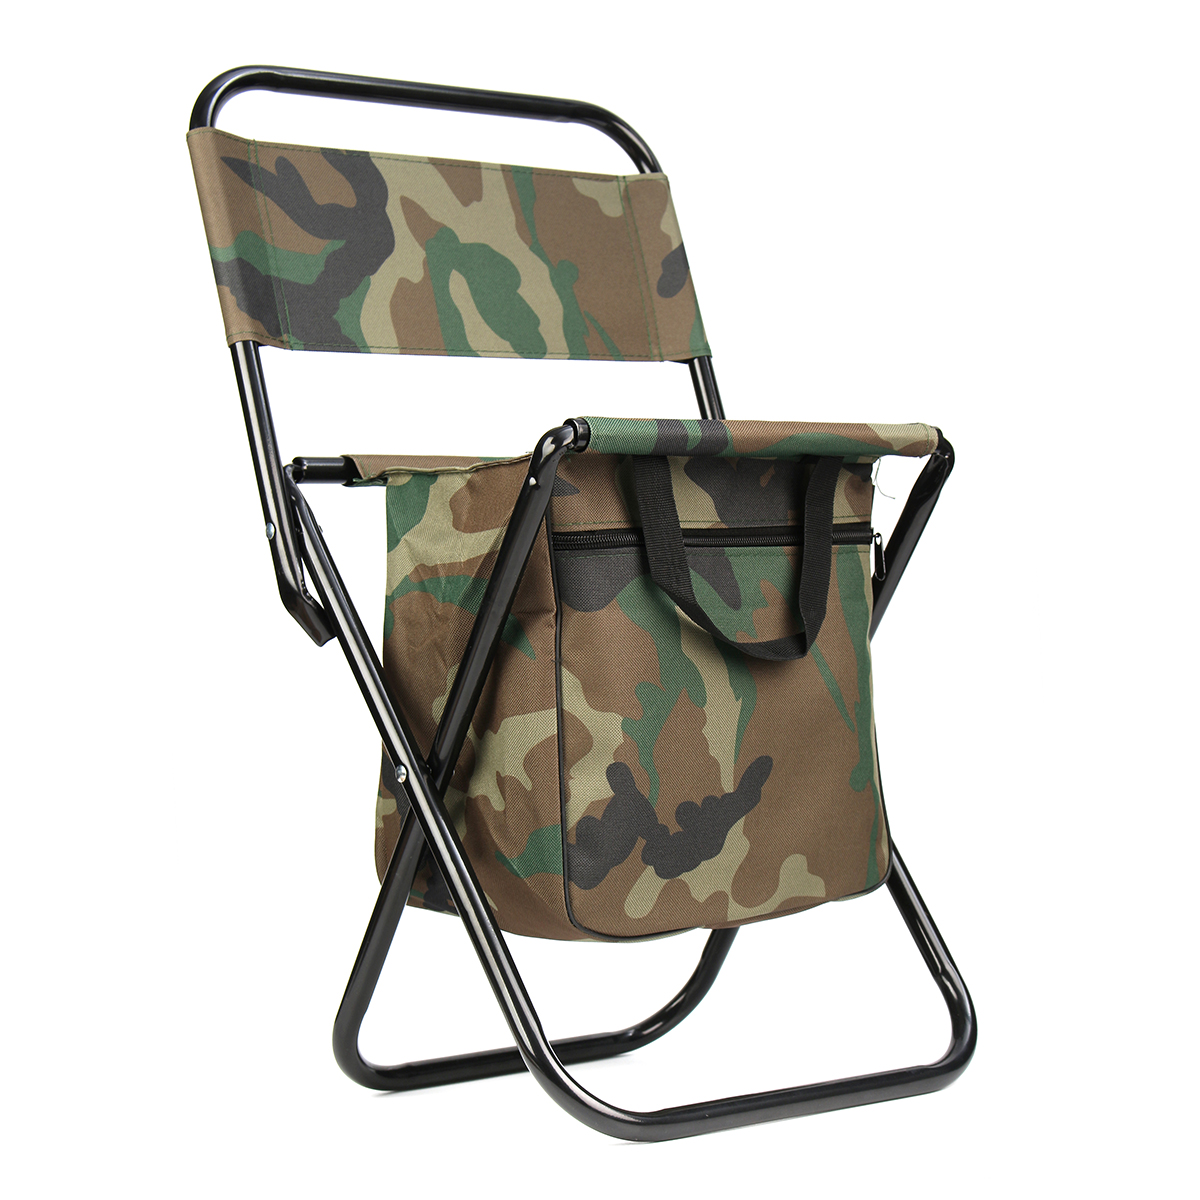 Camo Folding Chair Other Garden And Patio Furniture Camouflage Folding Chair